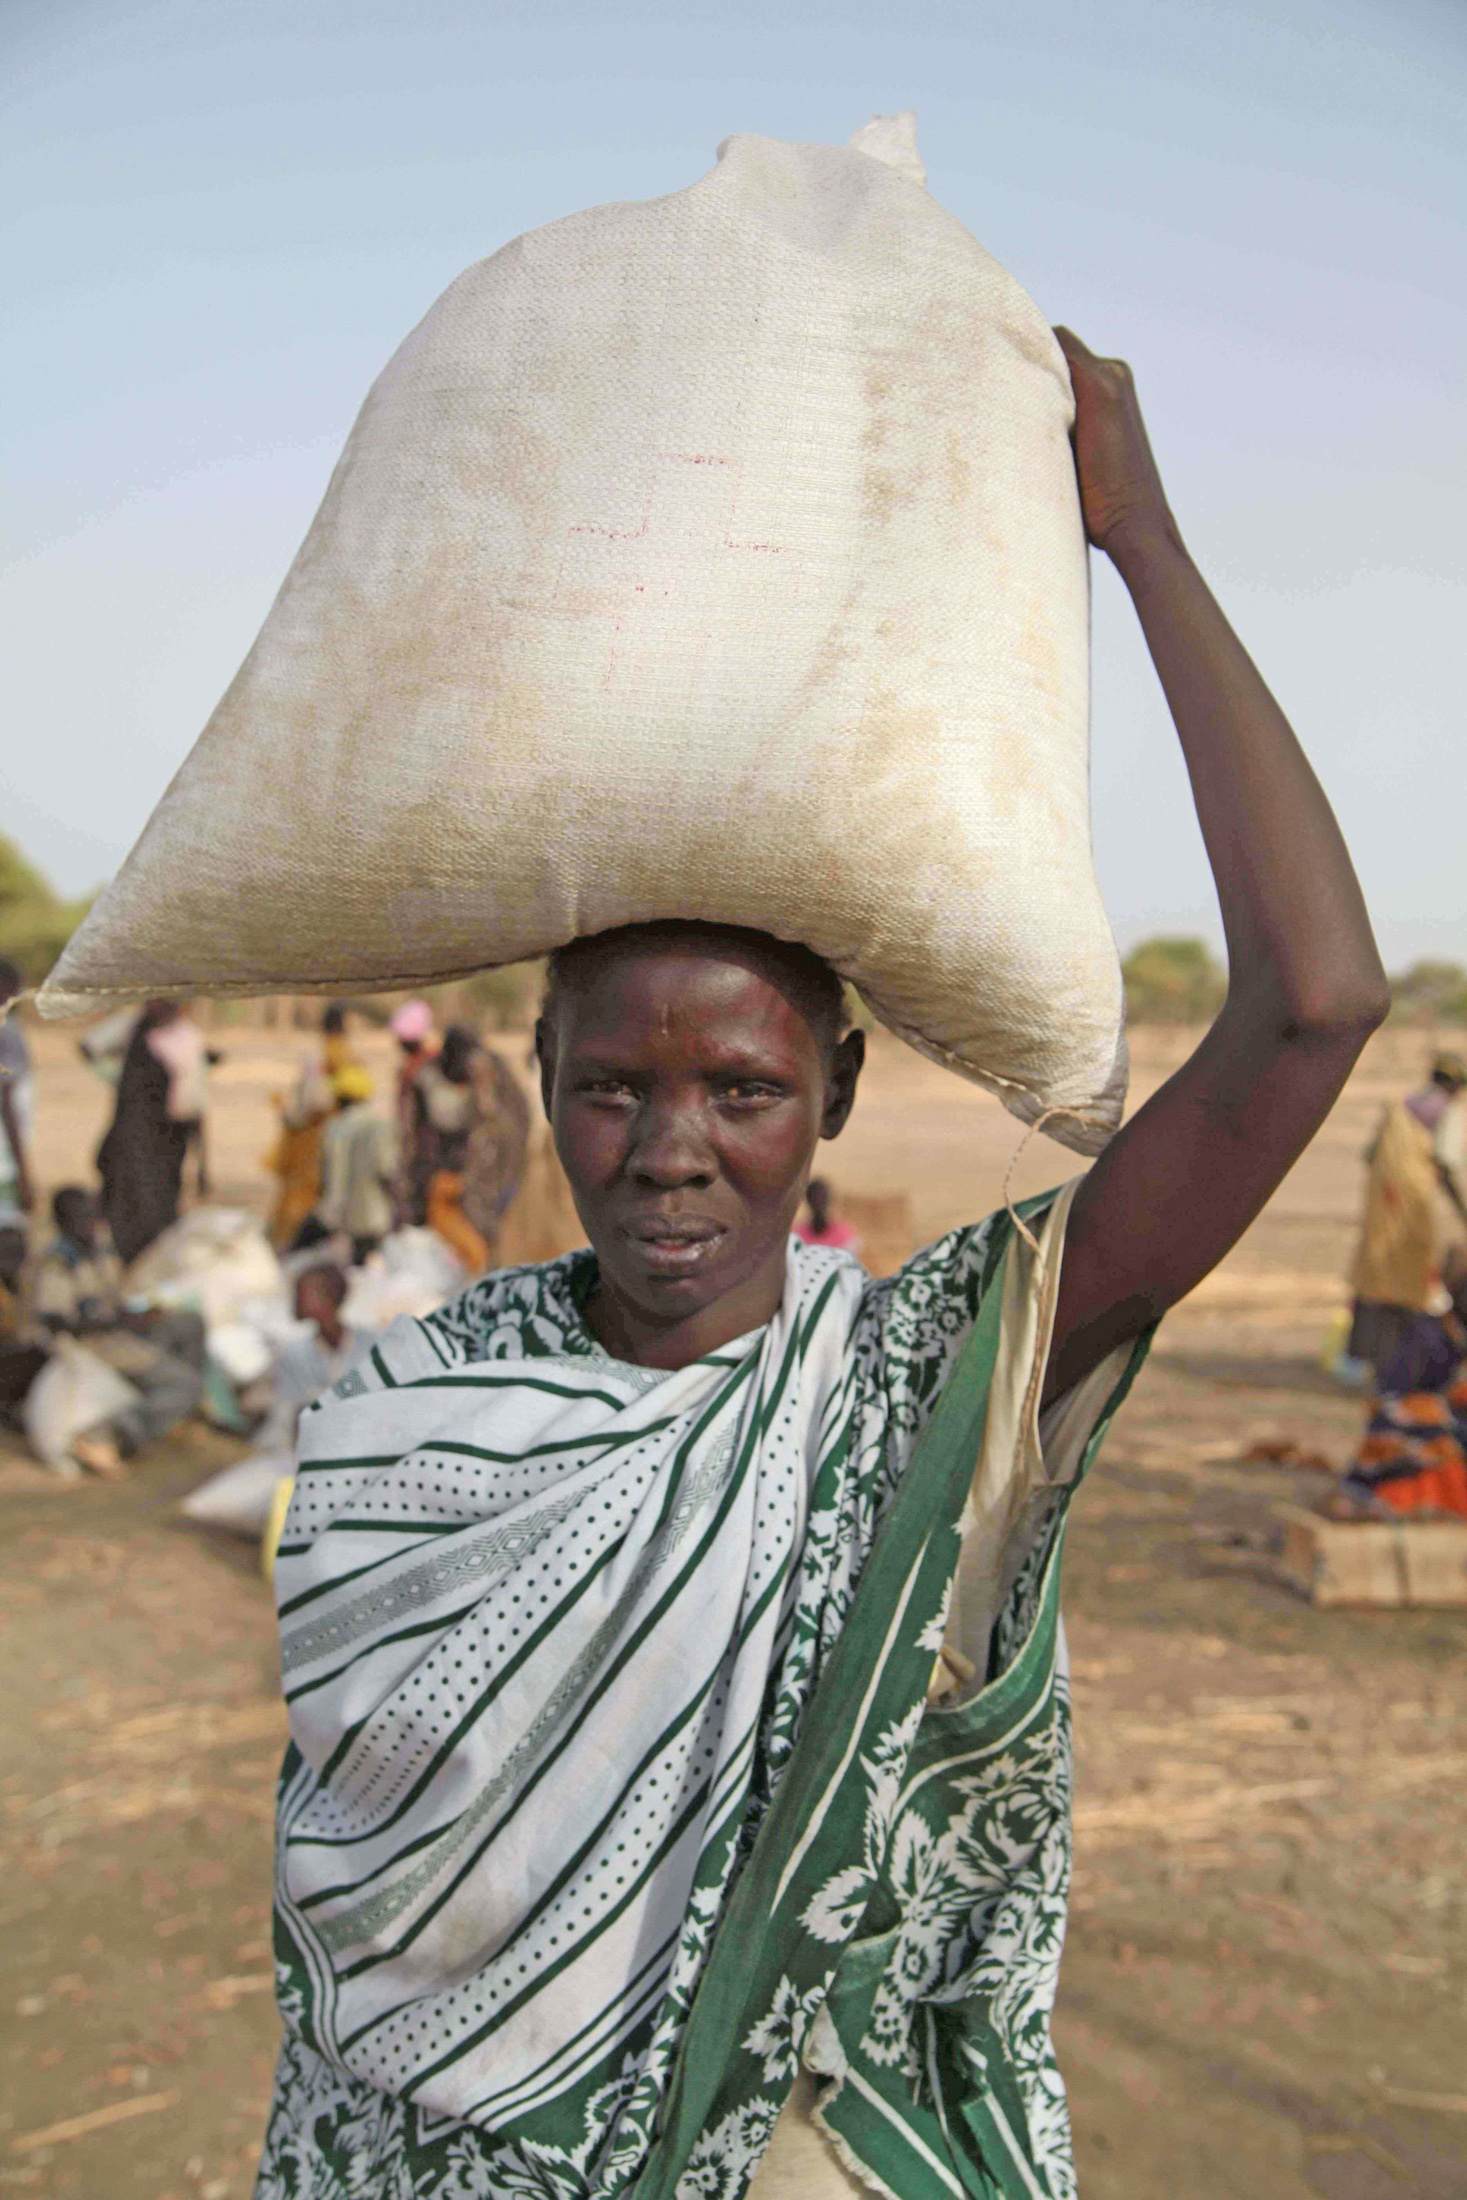 A lady carries home precious food stocks that will feed her family while they plant crops